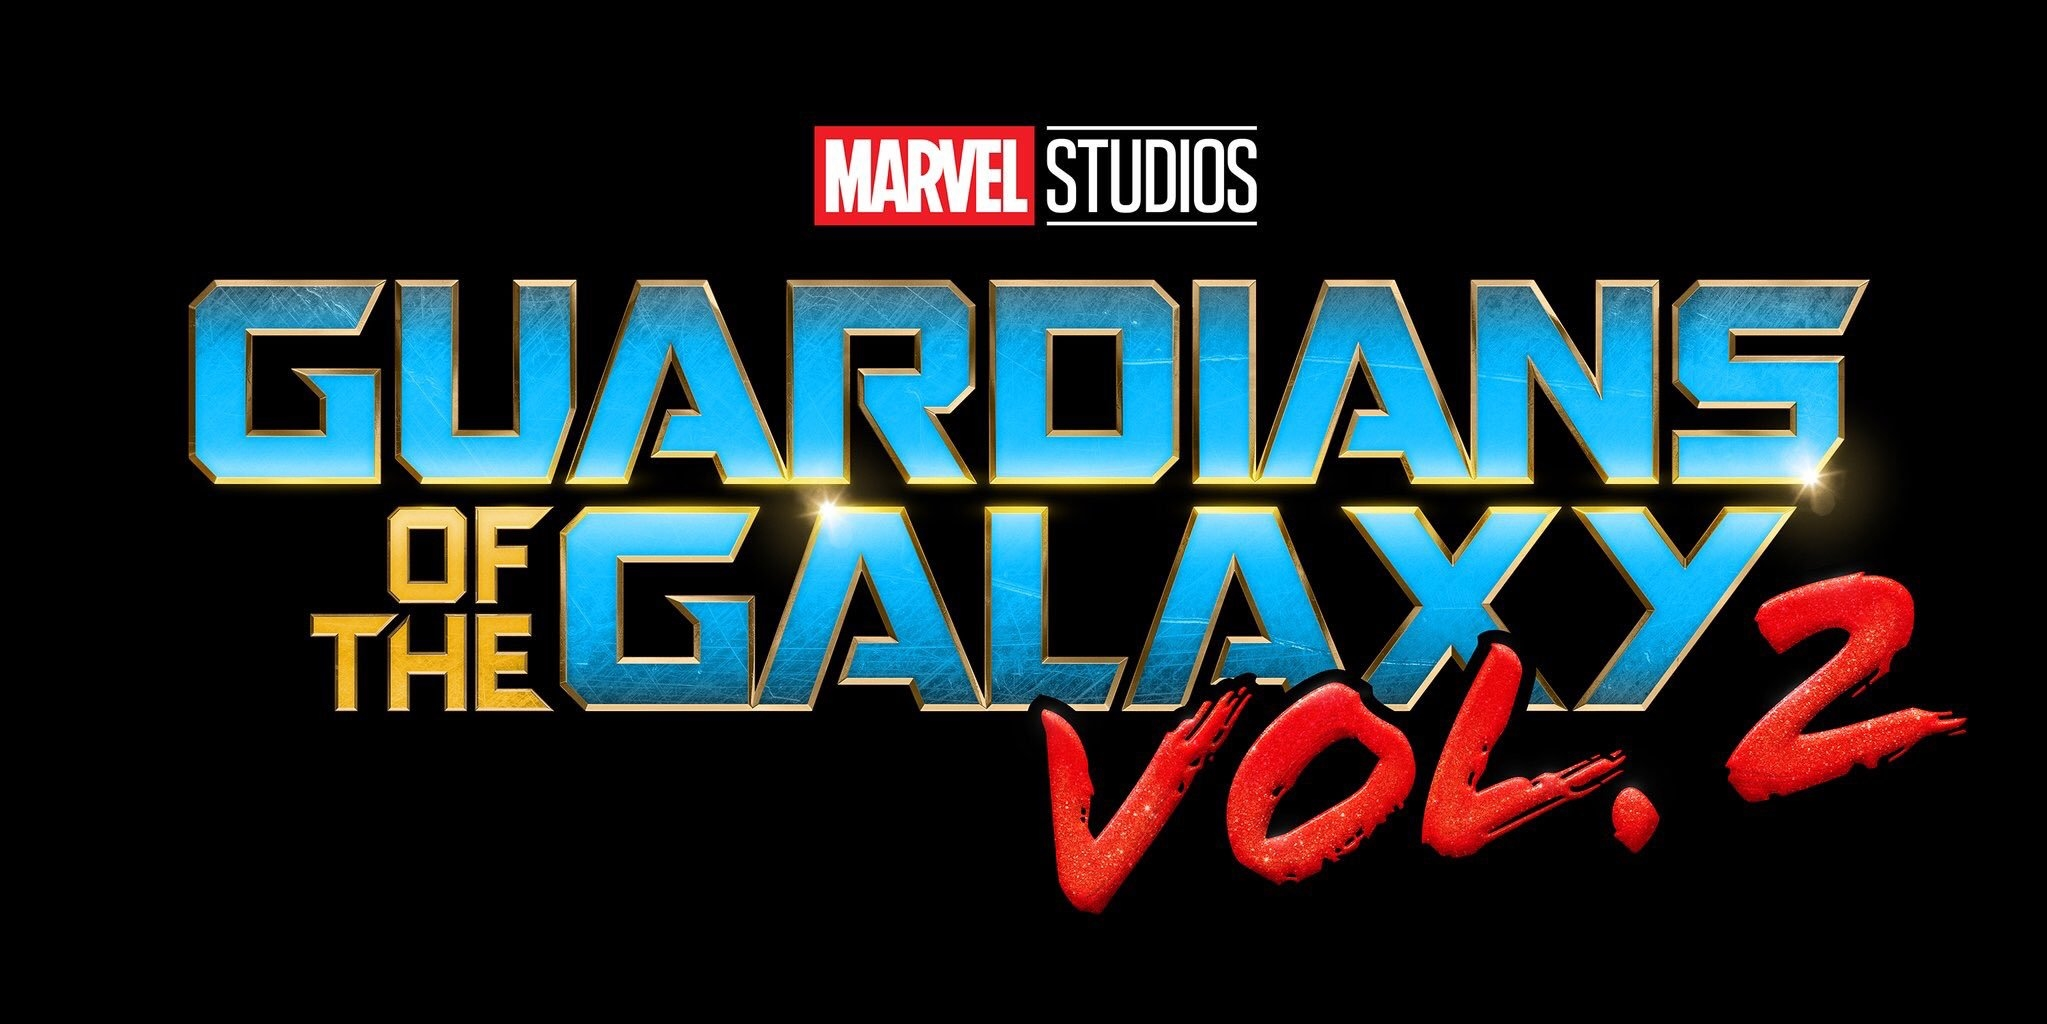 GUARDIANS OF THE GALAXY VOL. 2 On Digital Aug 8 & 4K Ultra HD & Blu-ray Aug 22